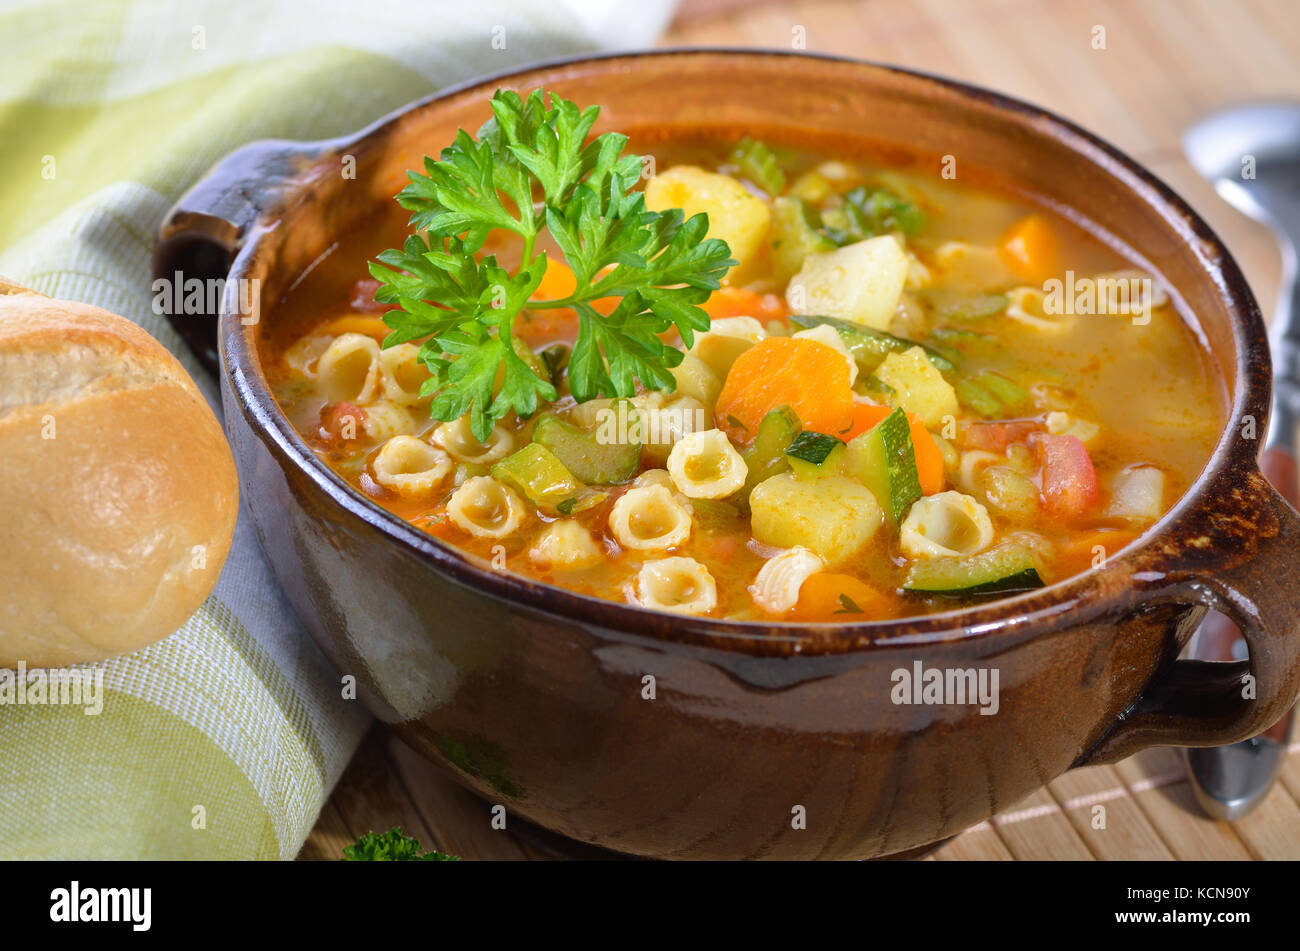 Fresh vegetable soup with noodles - Italian minestrone - Stock Image